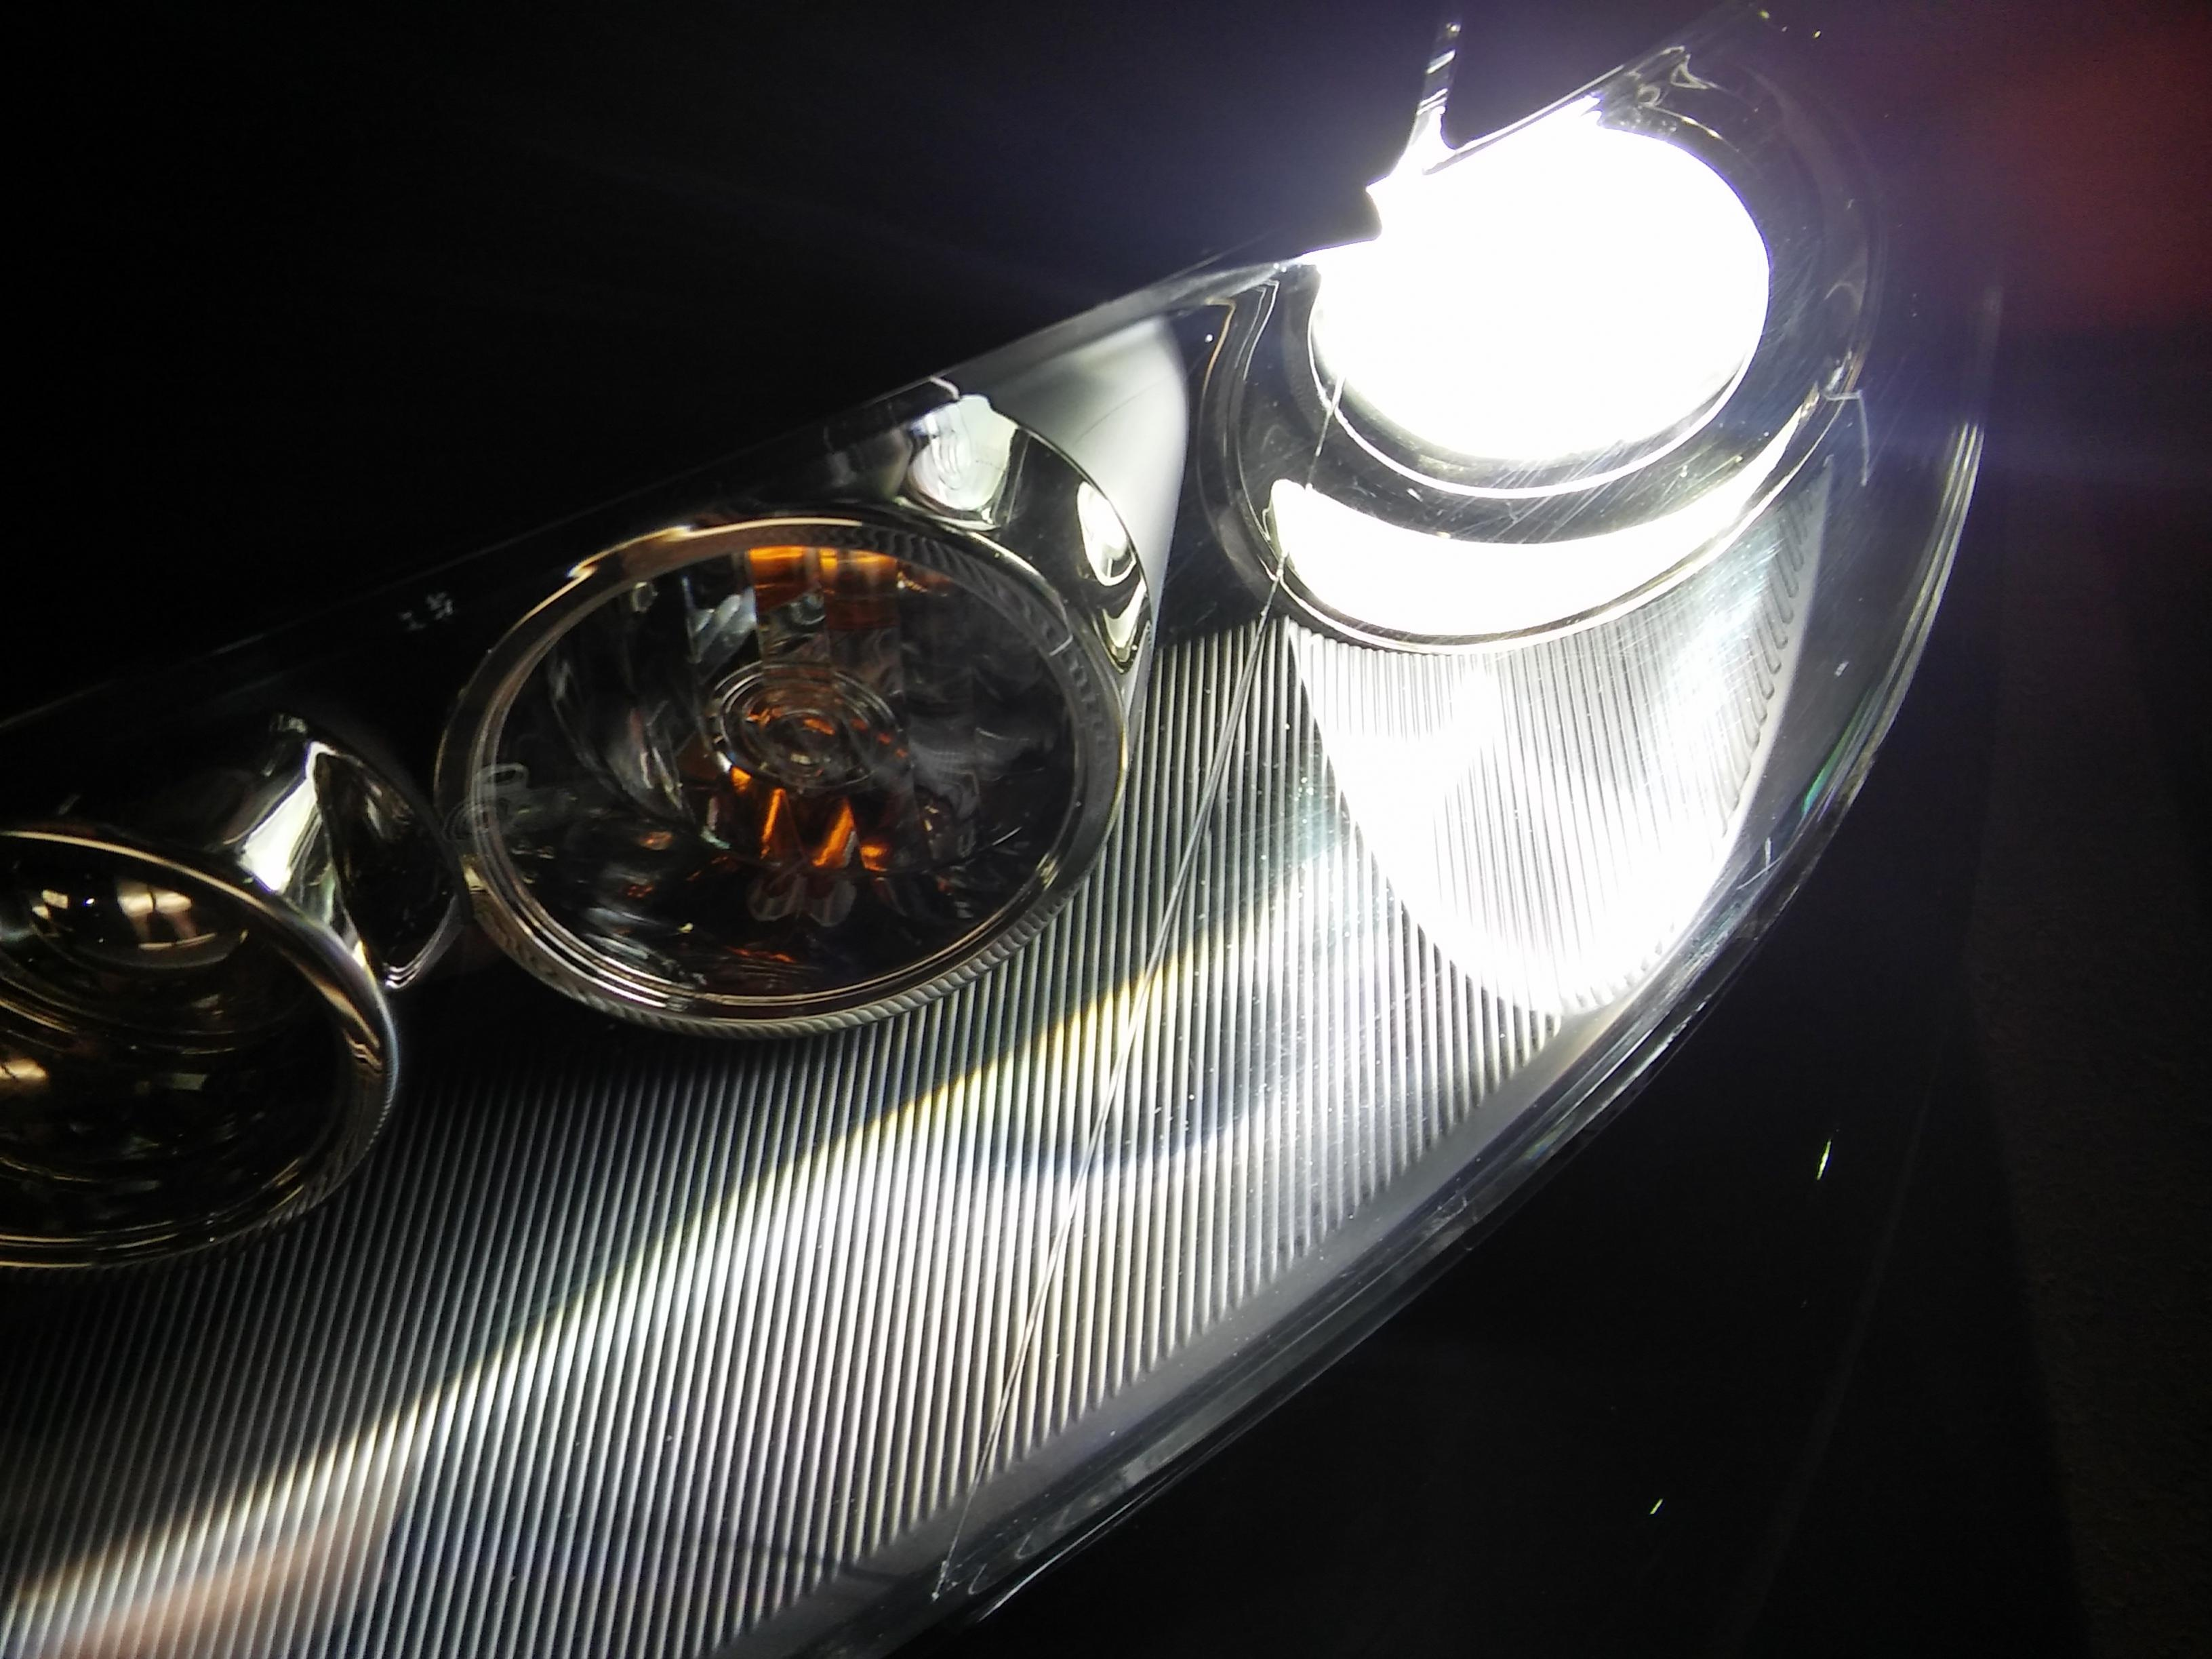 DIY: Headlight lens replacement Mazda 6 2007 - Mazda 6 ...